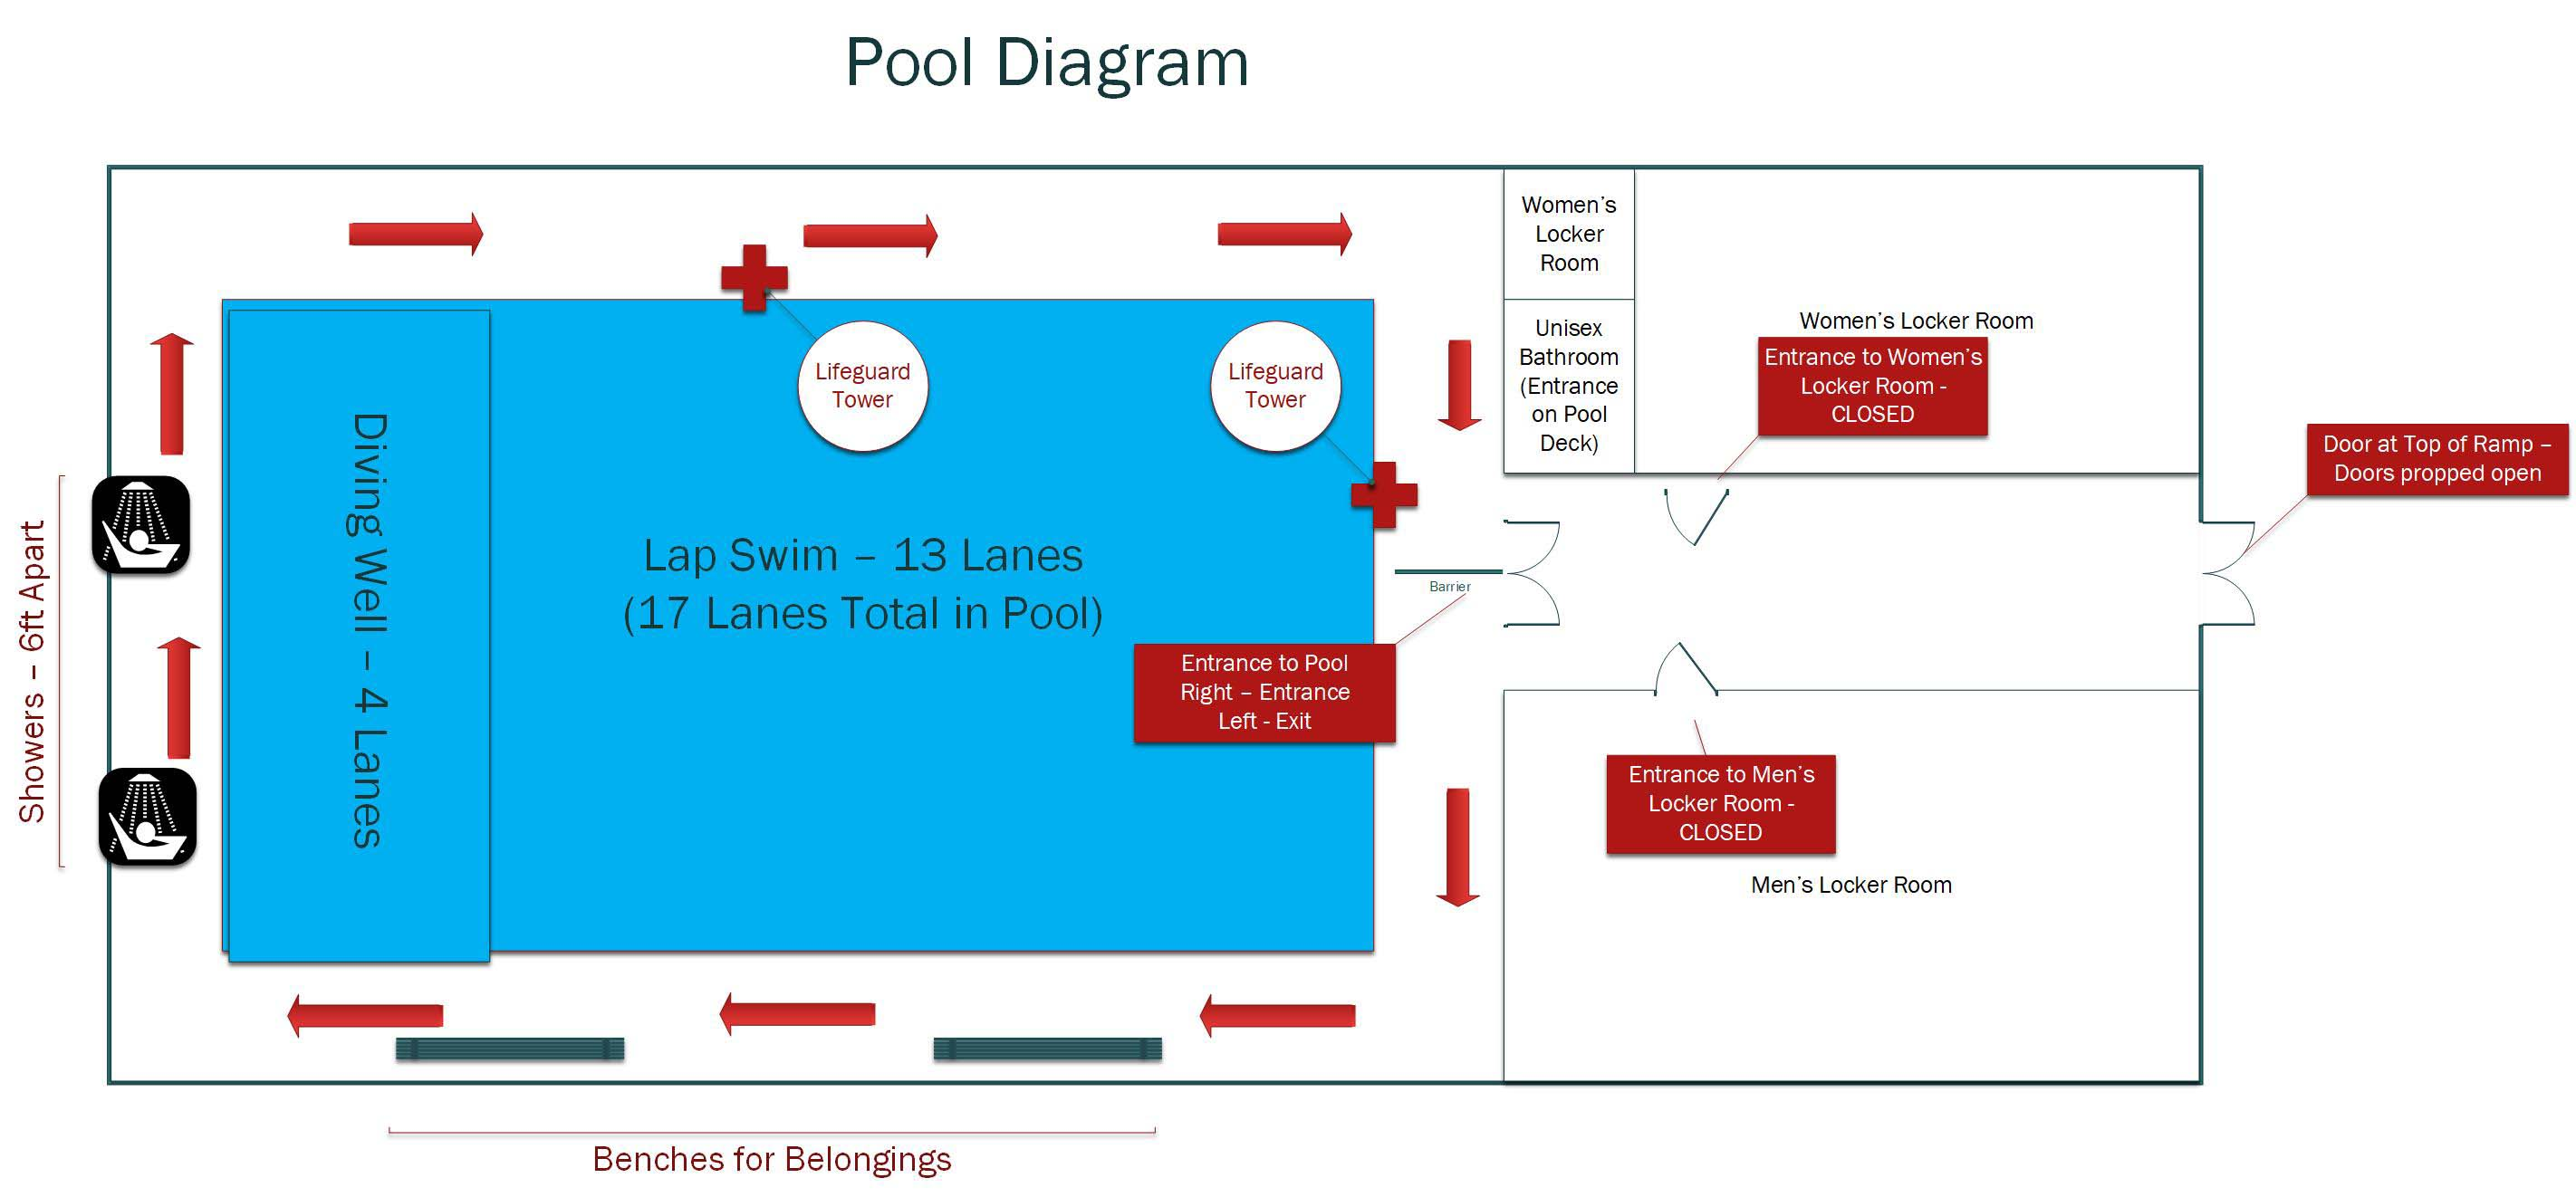 A diagram of the pool in the Sports & Recreation Center.